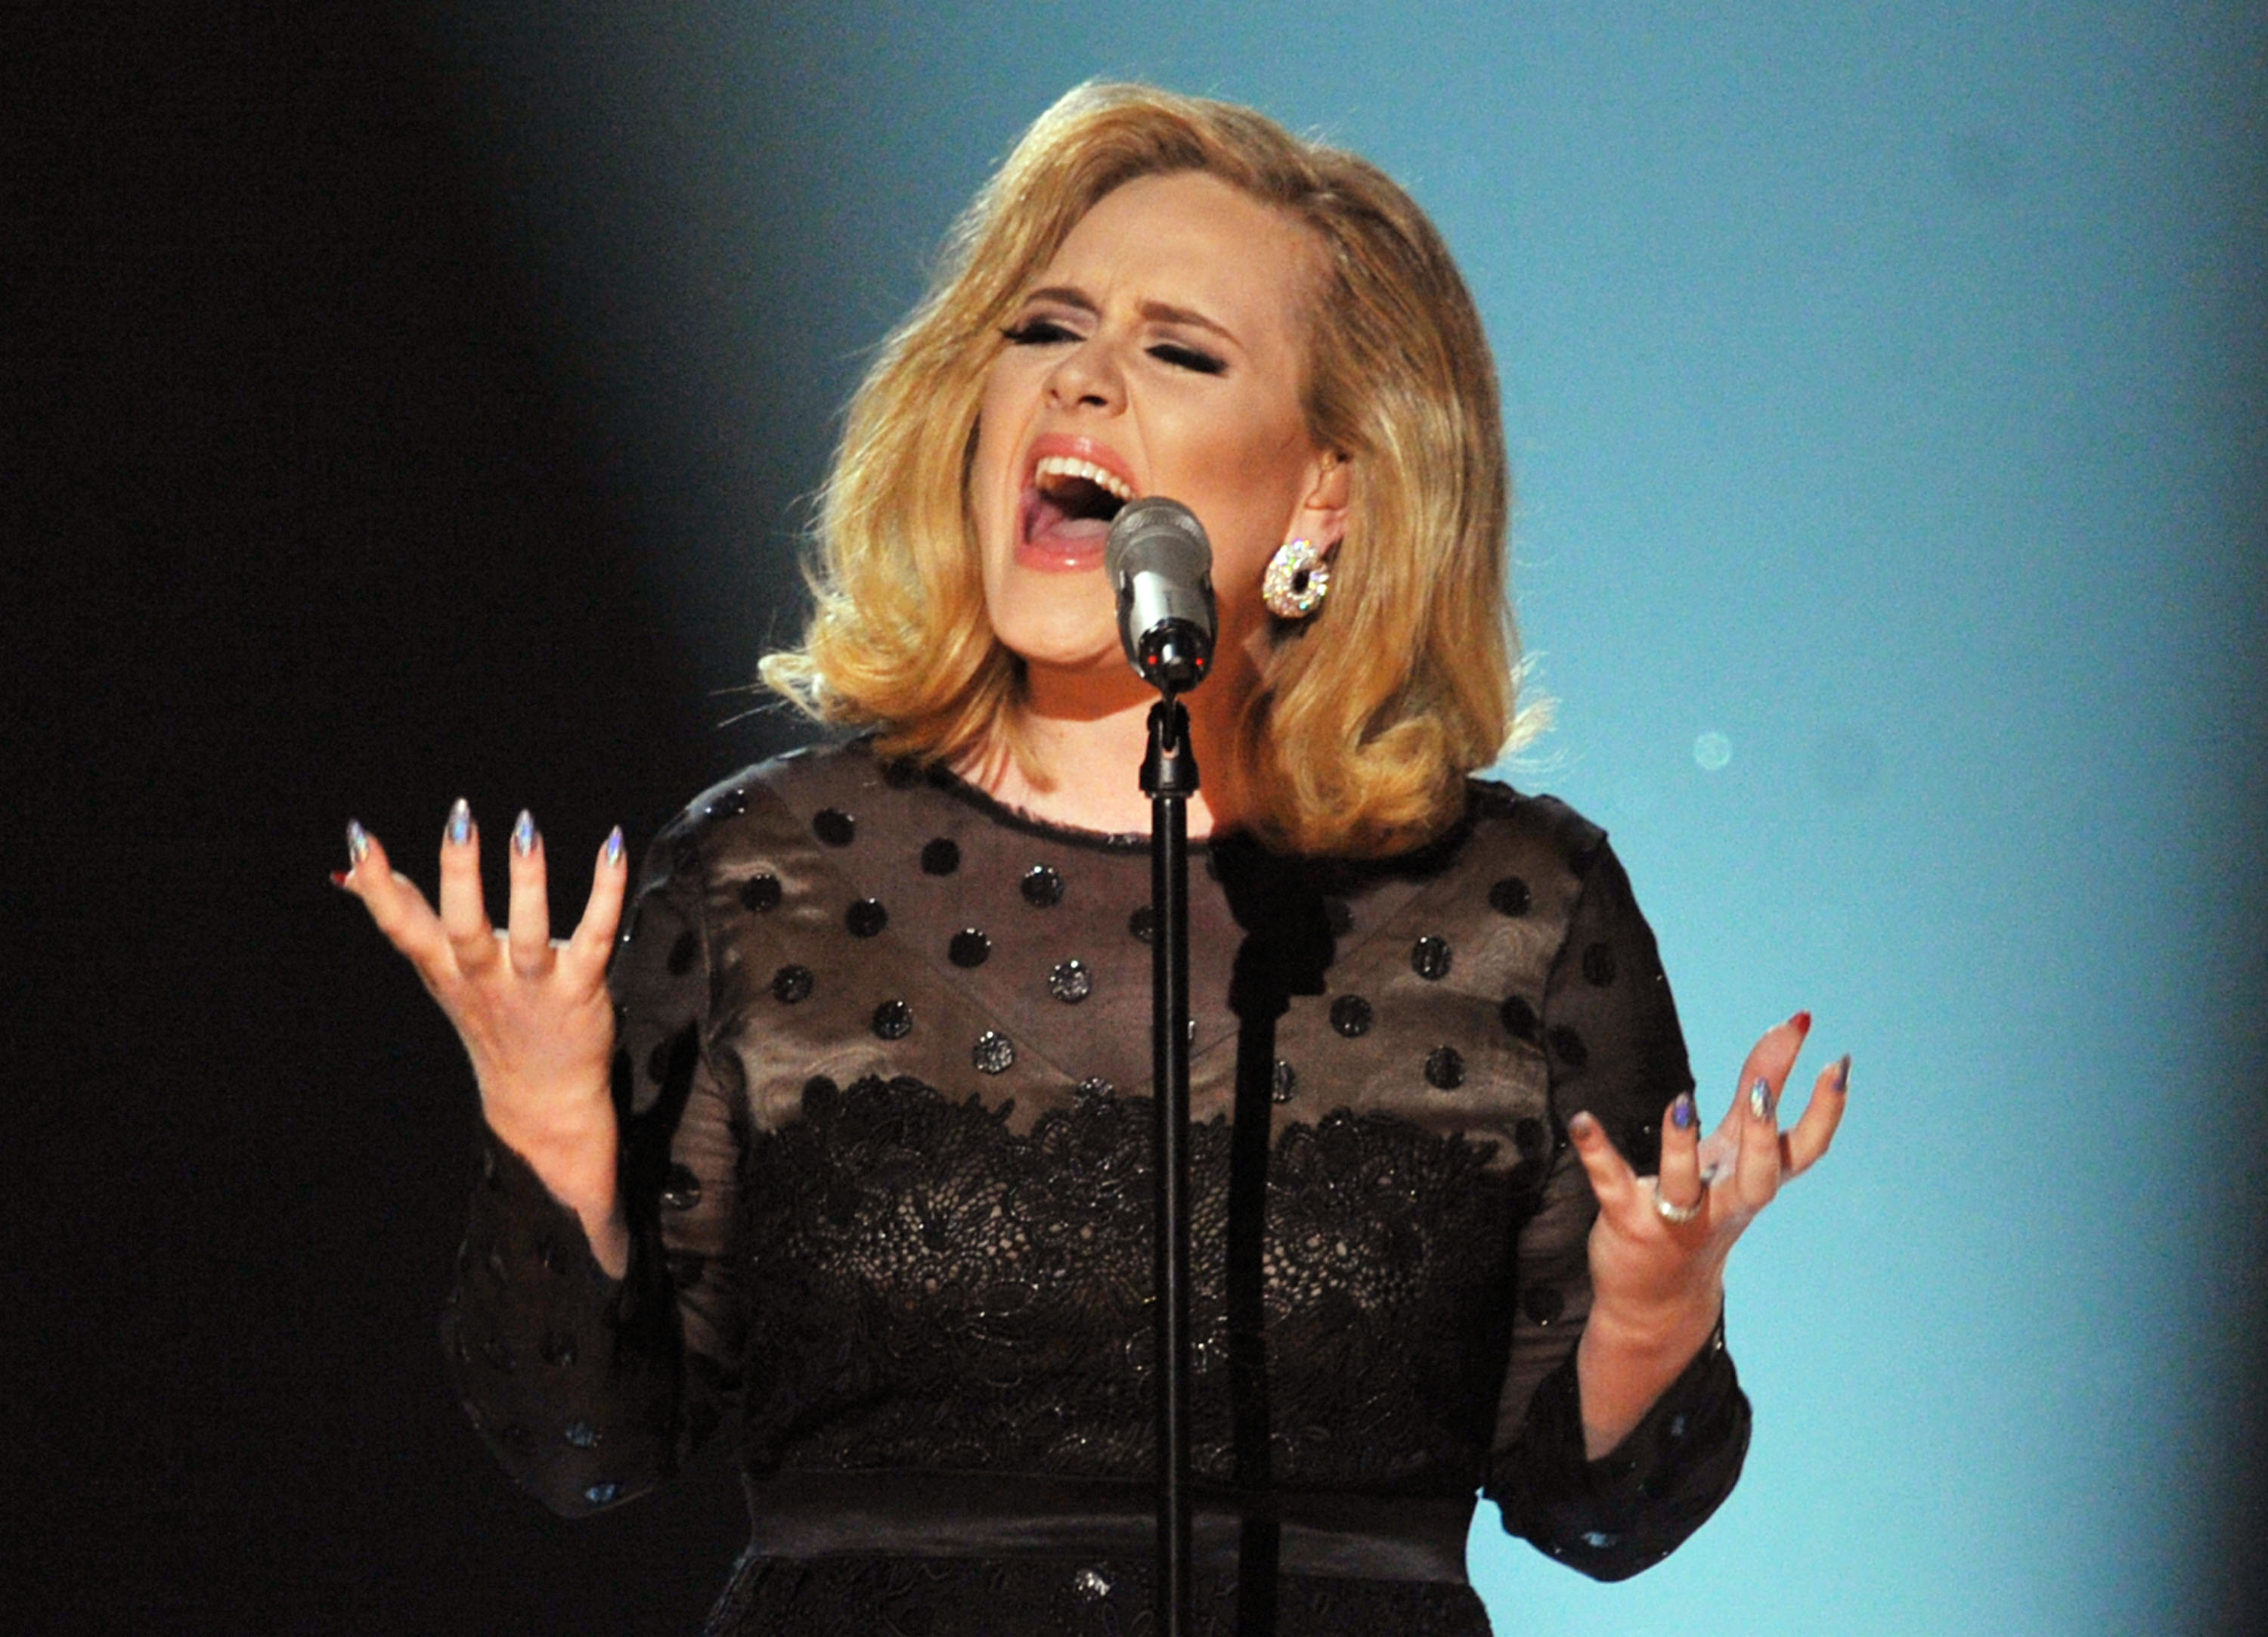 Adele performs onstage at the 54th Annual GRAMMY Awards held at Staples Center on February 12, 2012 in Los Angeles, California.